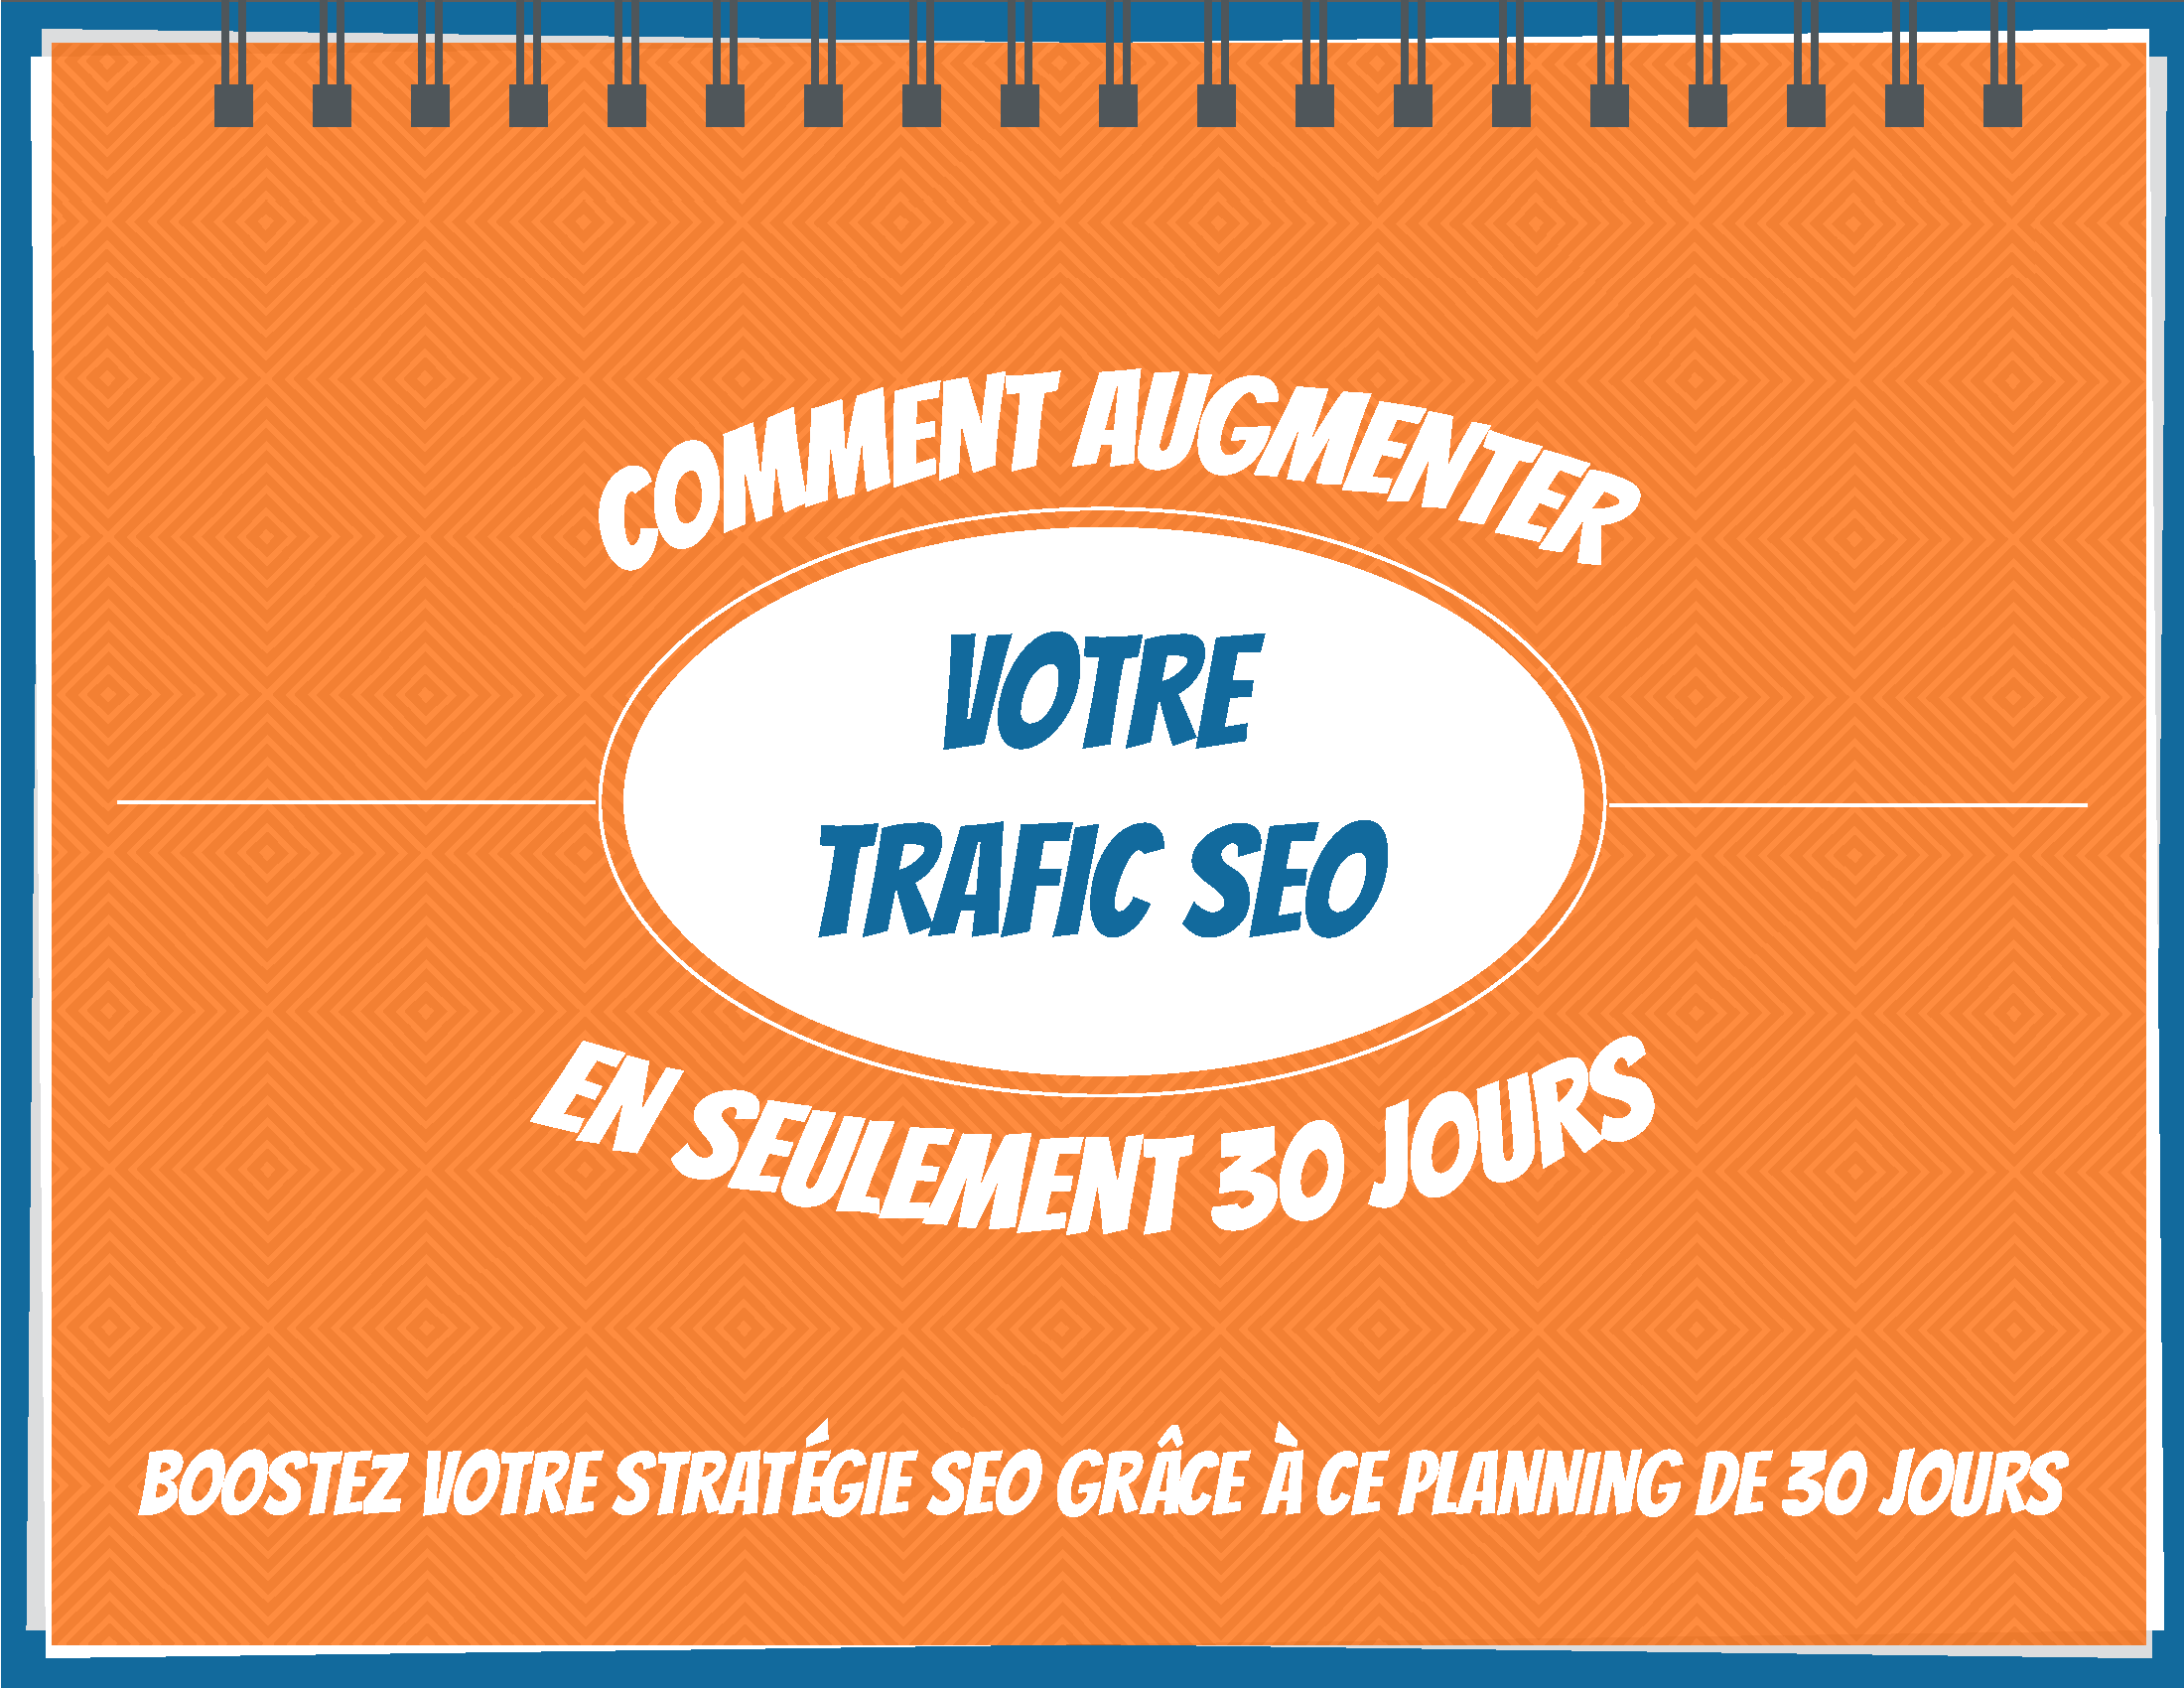 Comment-augment-SEO-trafic-30-jours-fin_Page_01.png